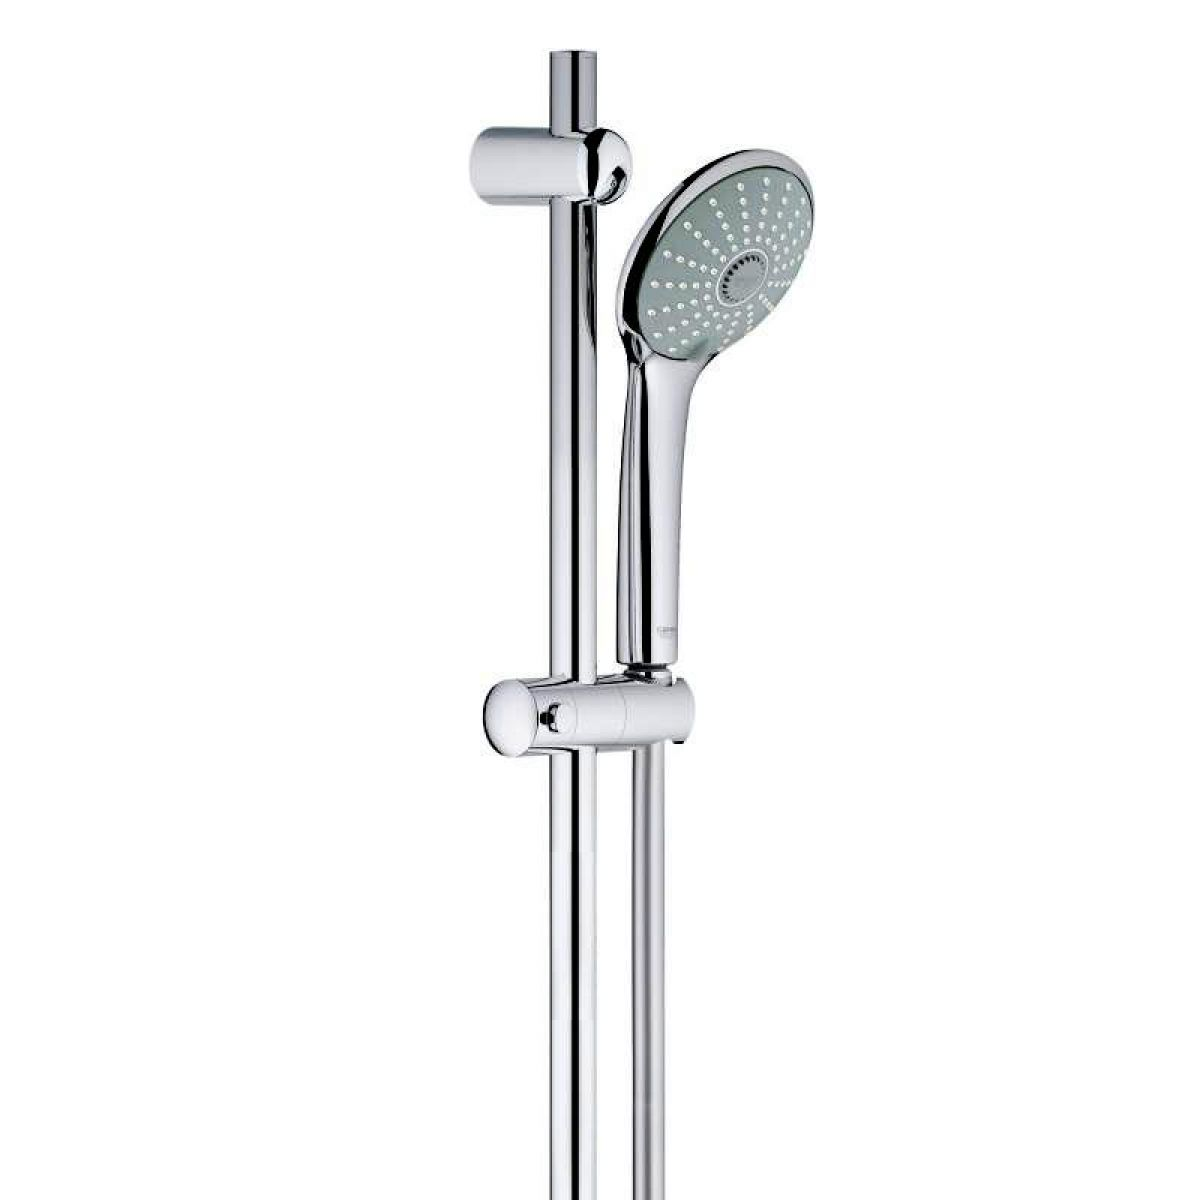 grohtherm 1000 cosmopolitan m thermostatic shower mixer. Black Bedroom Furniture Sets. Home Design Ideas